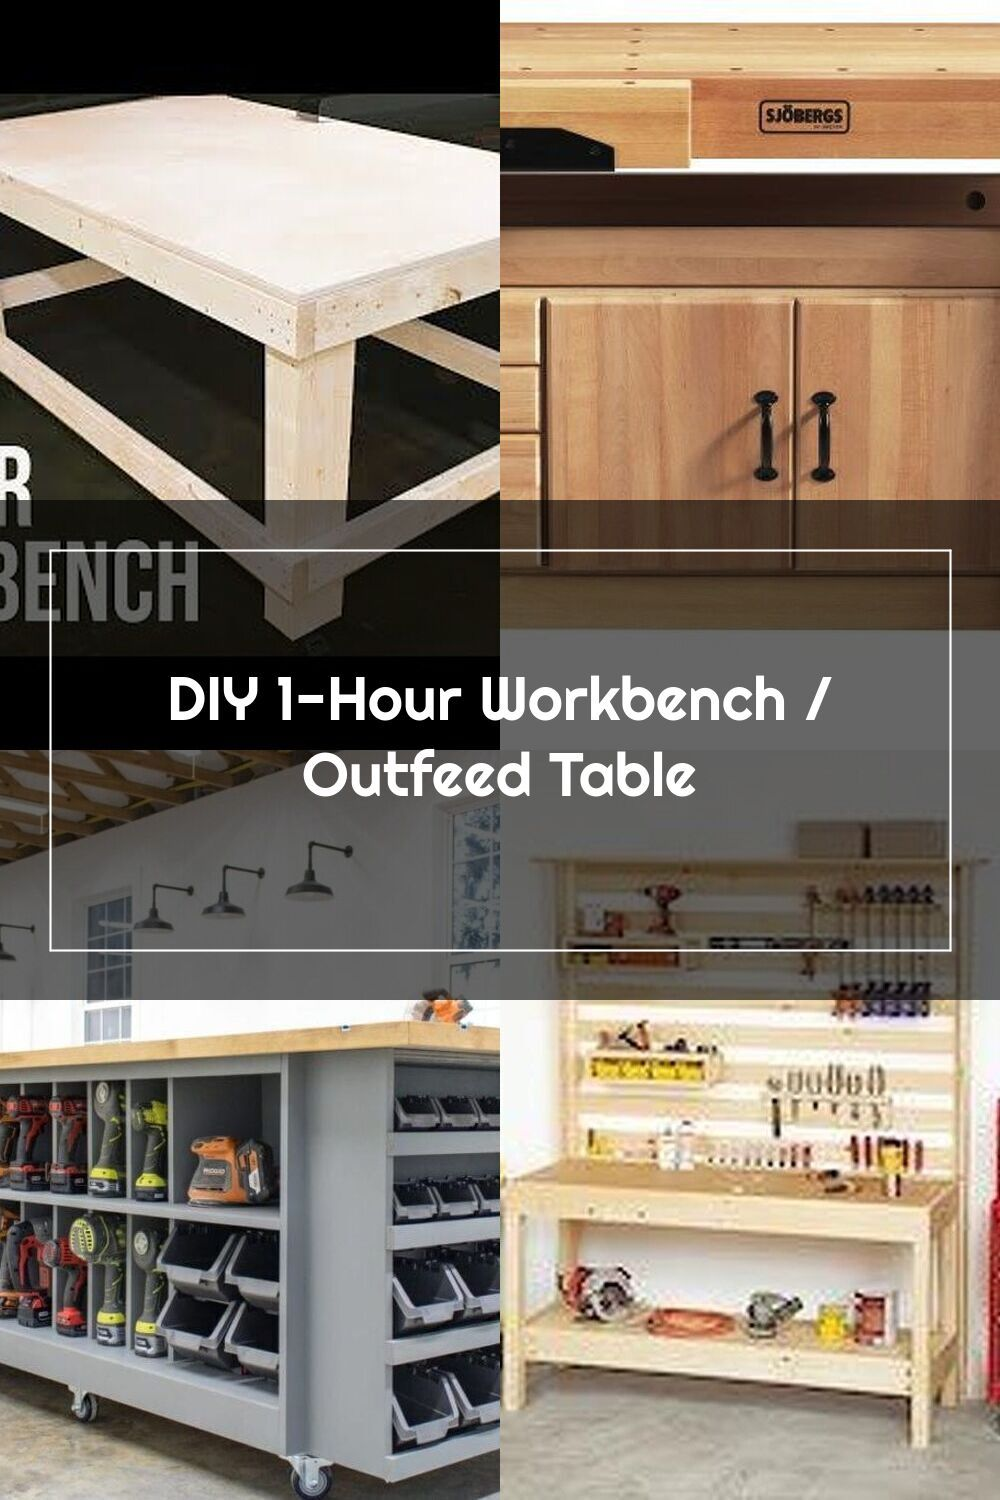 Diy 1 Hour Workbench Outfeed Table This Workbench Is Made From All 2x4 Dimensional Lumber And Less Than One Full Sheet Of In 2020 Dimensional Lumber Workbench Table